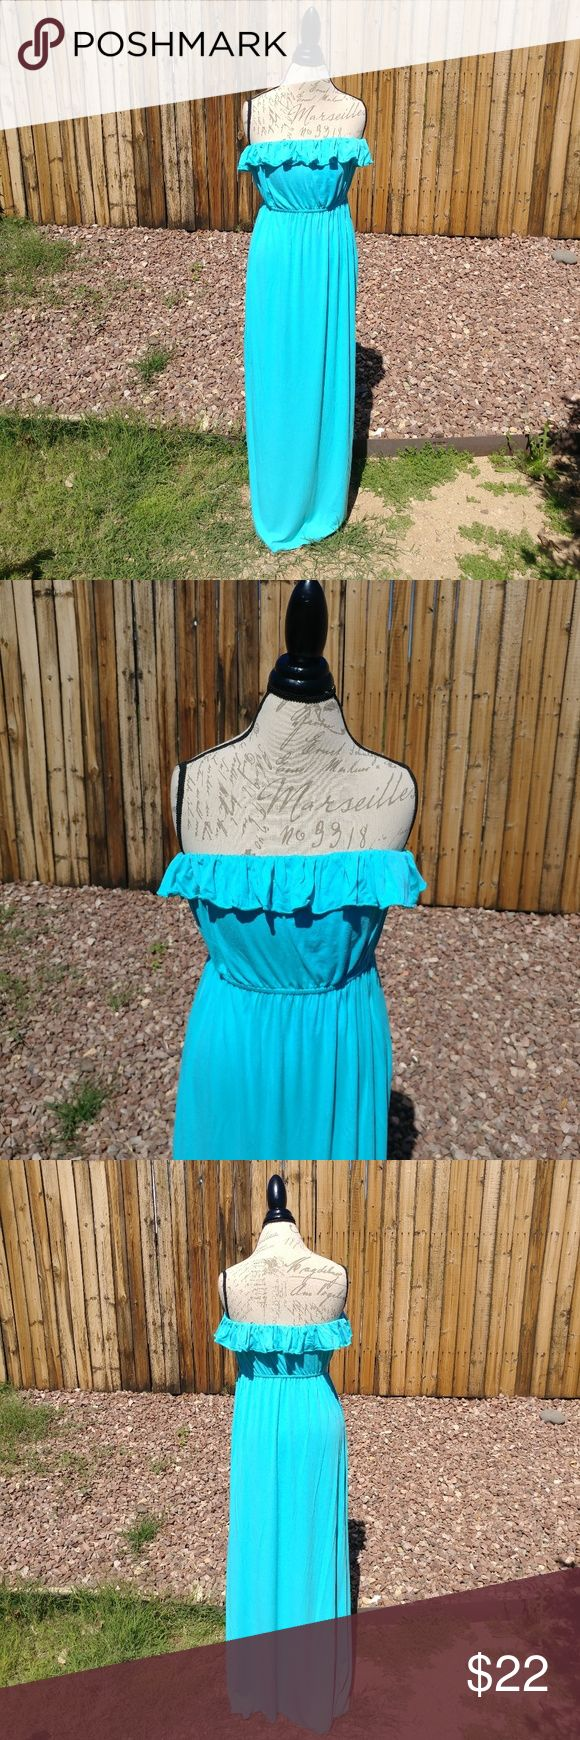 """Collective Concepts teal maxi dress Turquoise, straples maxi dress. Very good condition. Size: L Dress is very stretchy. Bust flat- 16"""" Waist flat- 15"""" (very stretchy) Length- 53.5""""  Offers are welcome. Collective Concepts Dresses Maxi"""